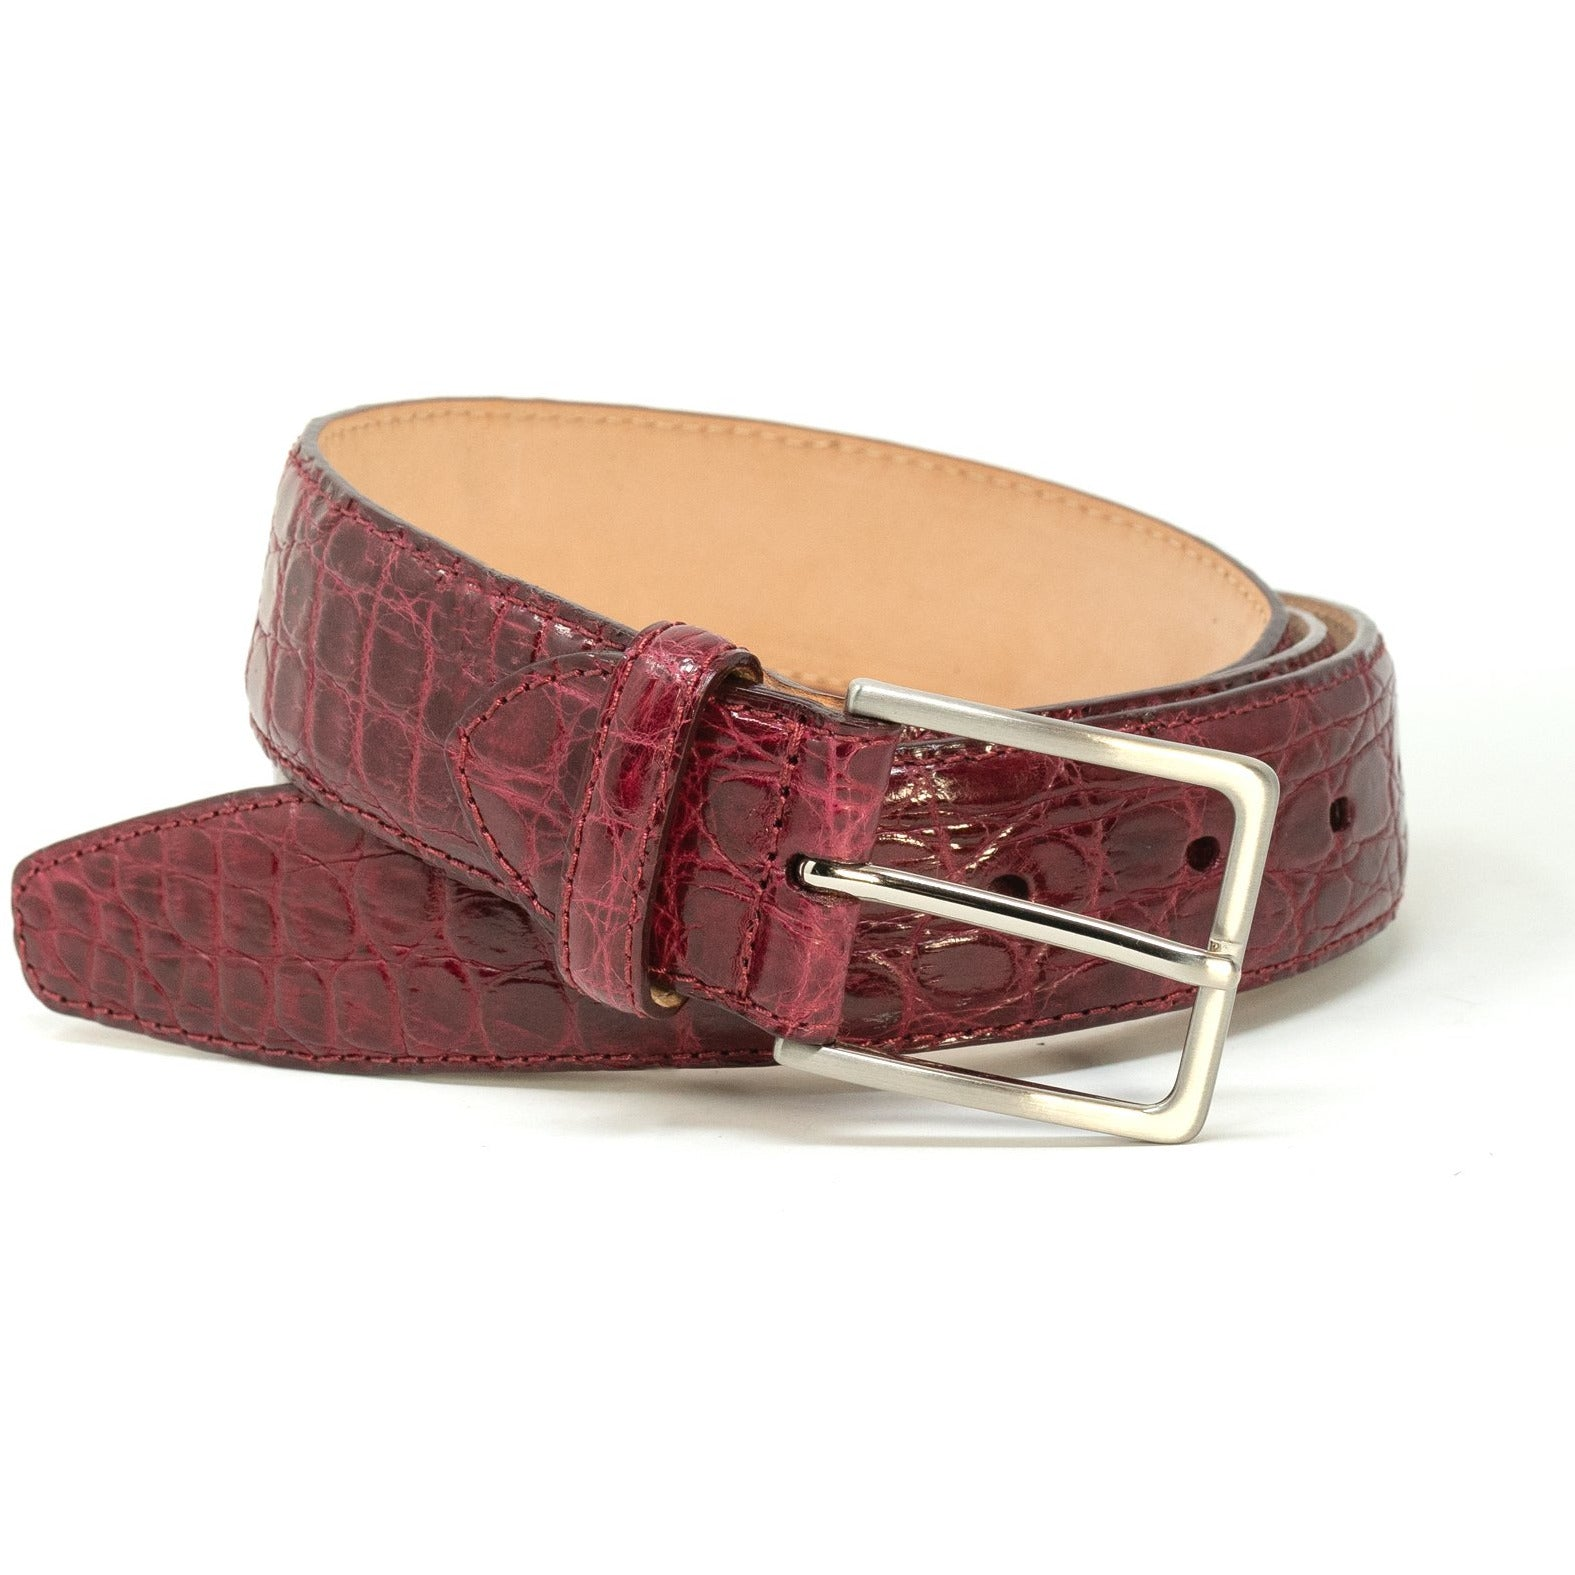 Burgundy Crocodile Leather Belt SAN44 107 - Jennifer Tattanelli